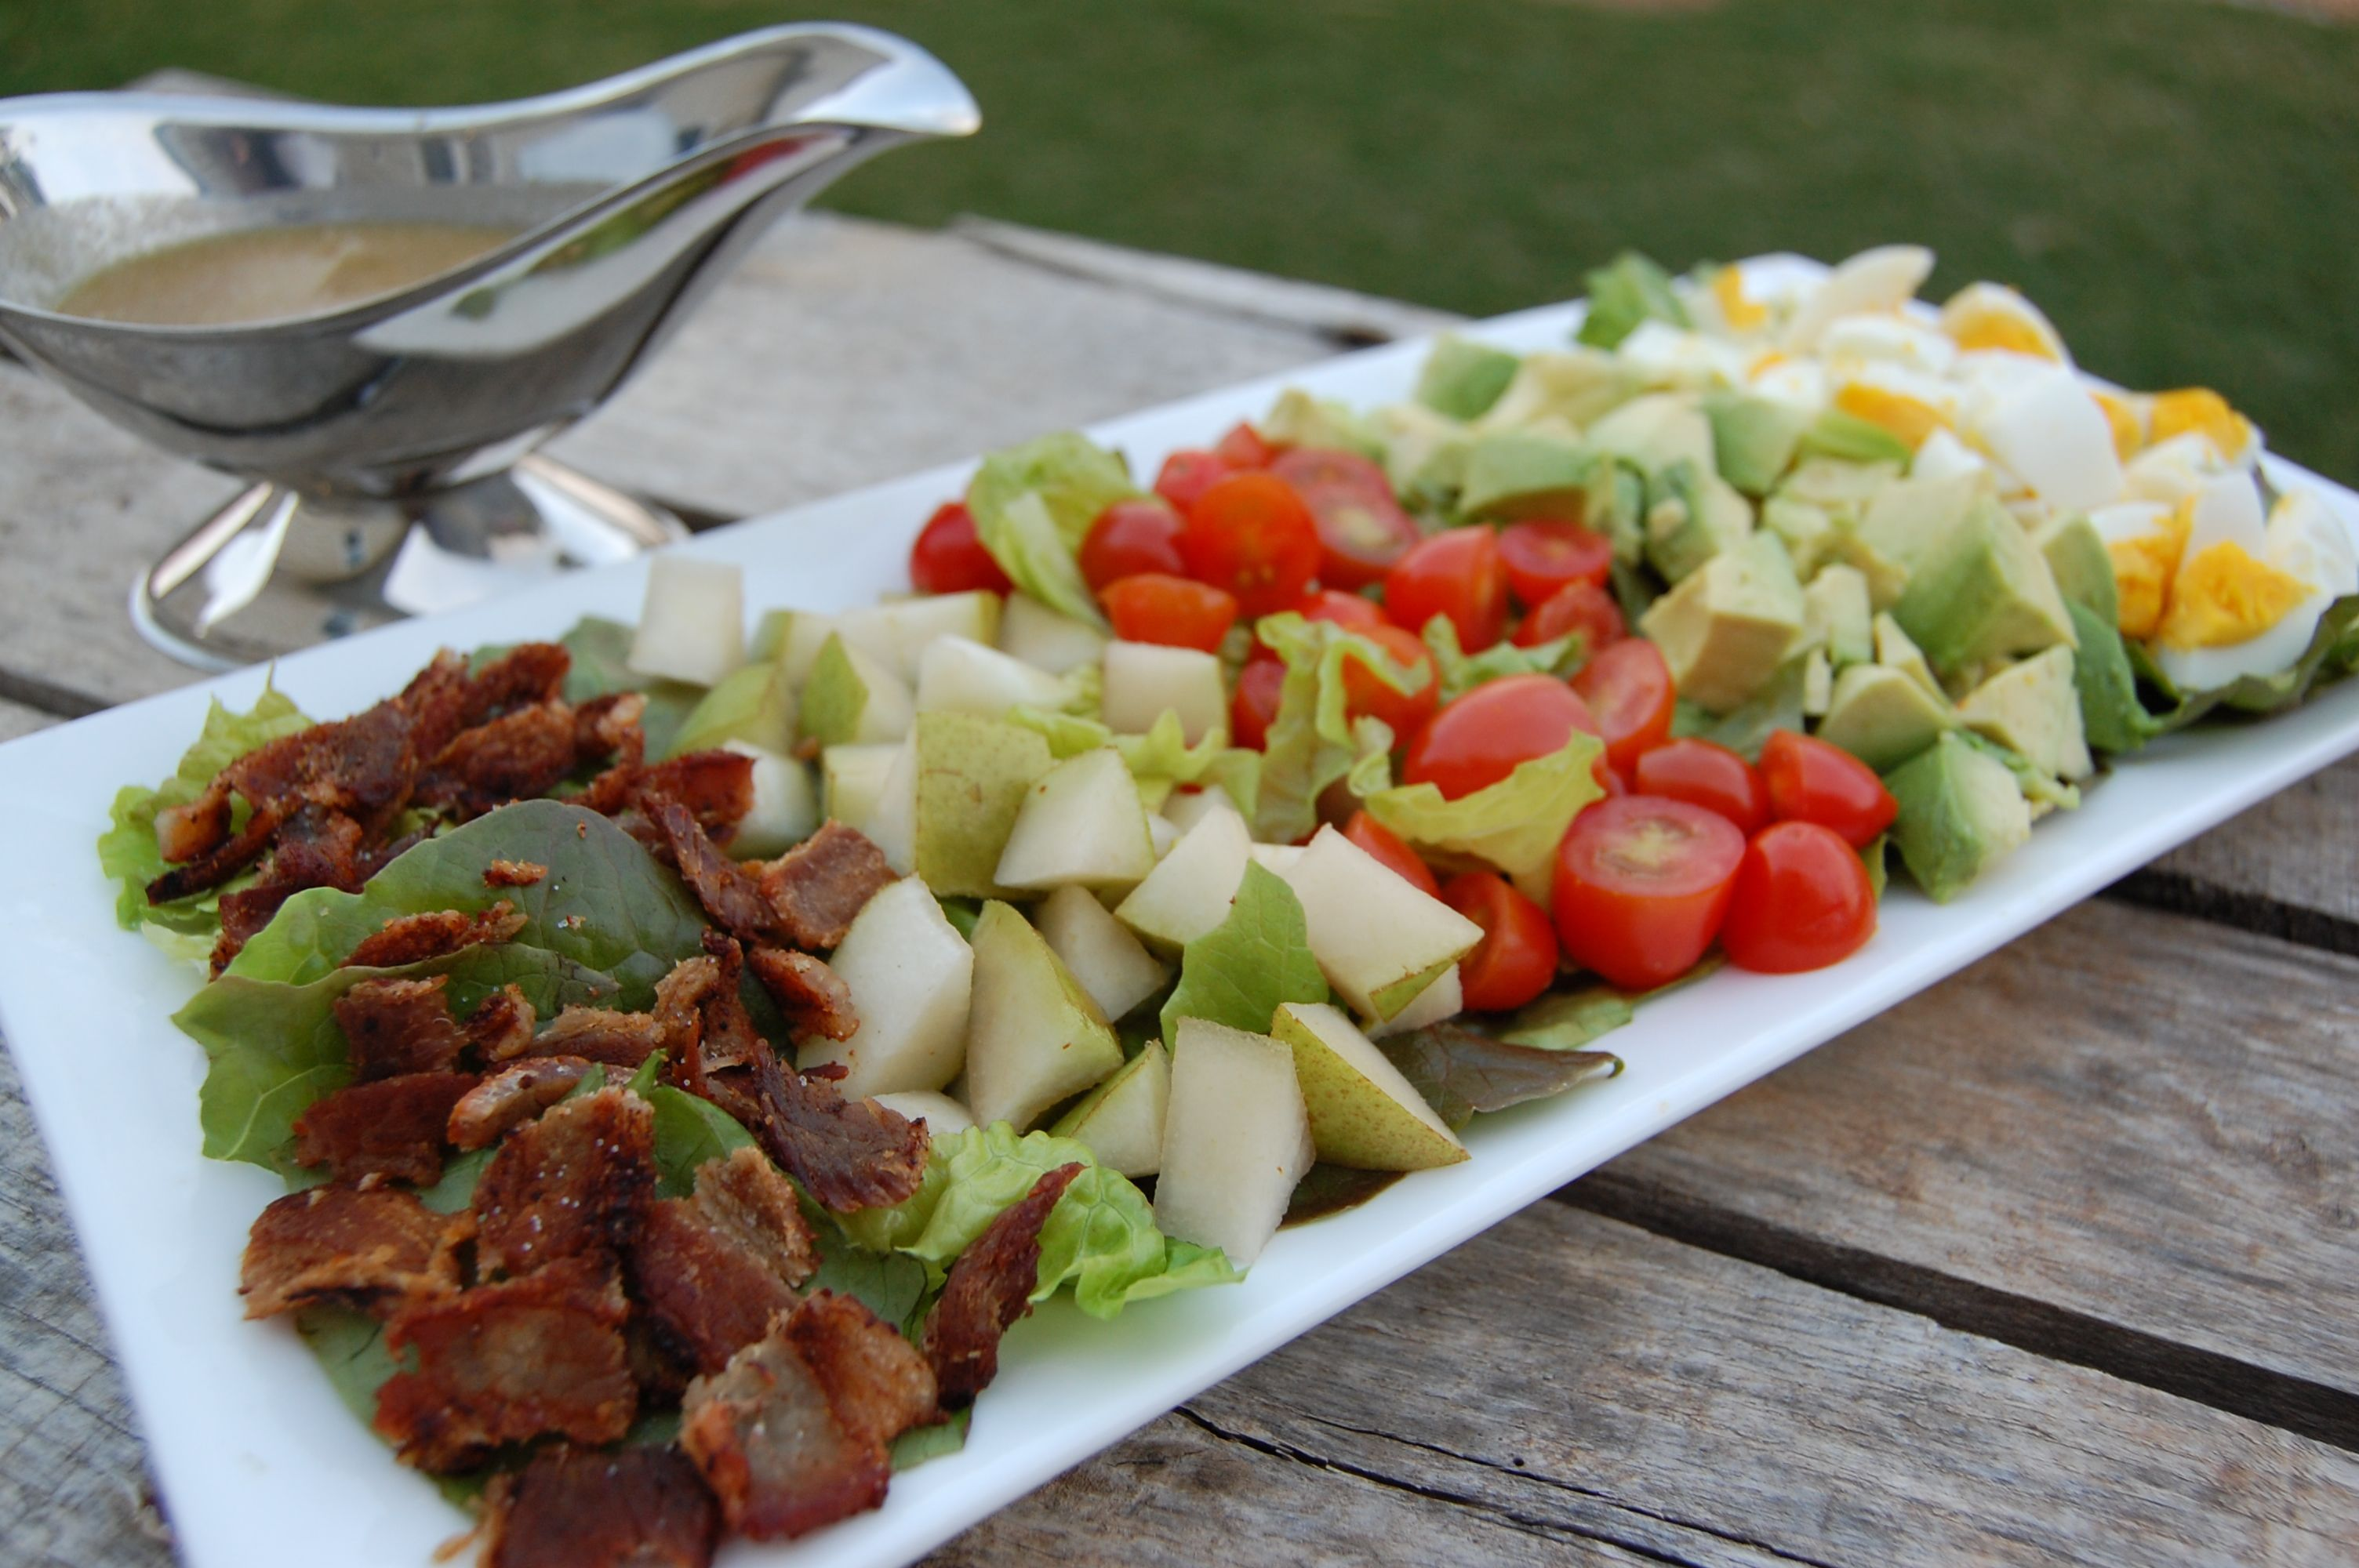 Recipe: Cobb Salad with Blue Cheese Dressing